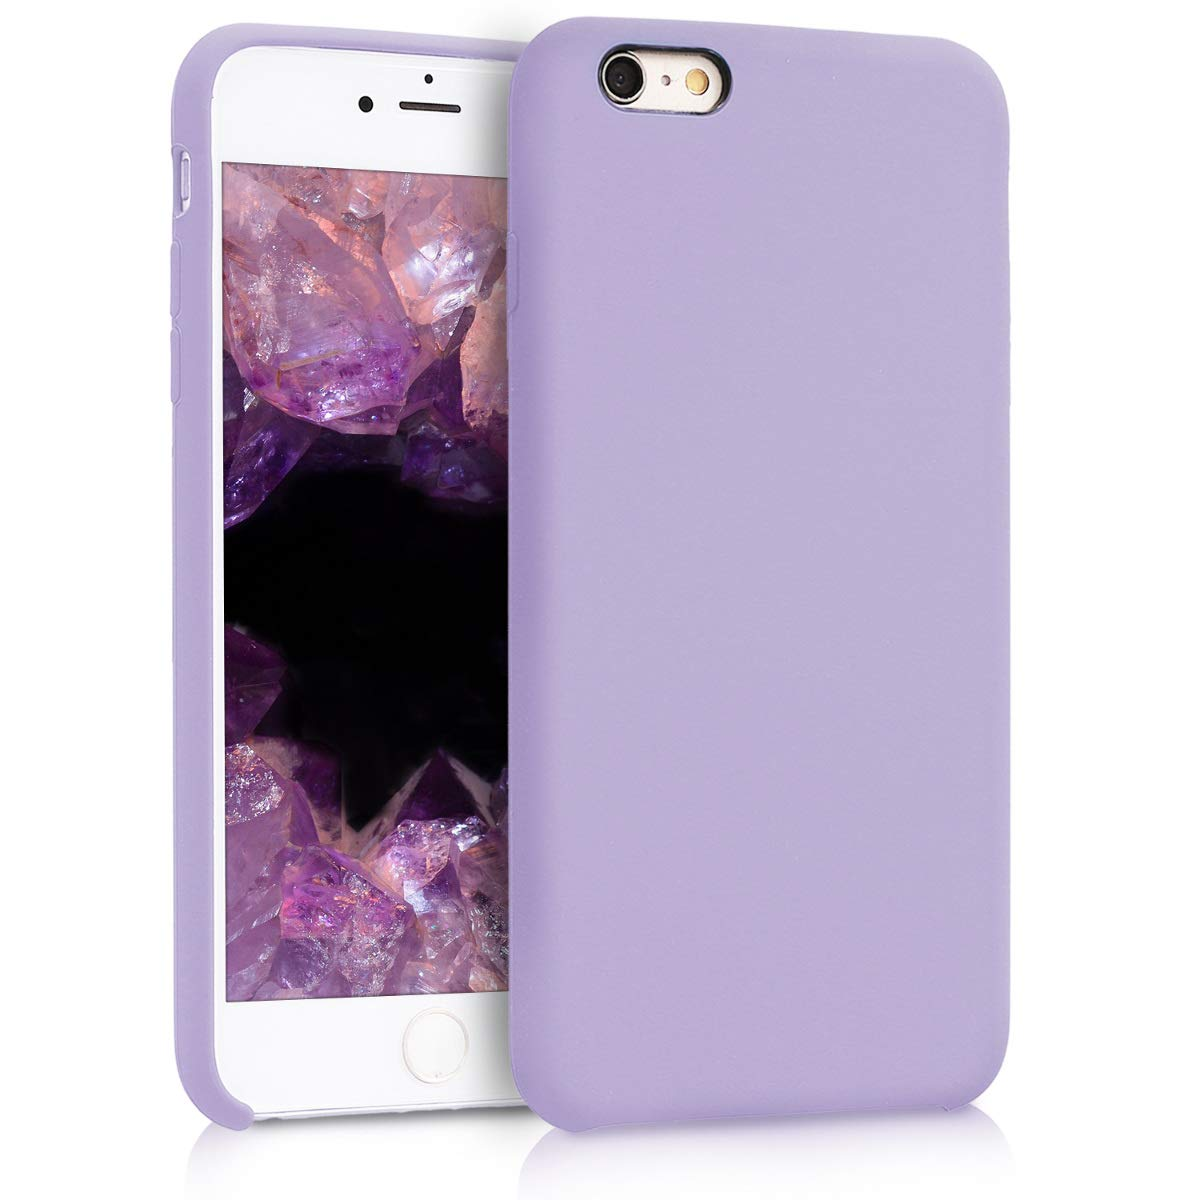 ff11c111c31 Amazon.com  kwmobile TPU Silicone Case for Apple iPhone 6 Plus   6S Plus -  Soft Flexible Rubber Protective Cover - Lavender  Cell Phones   Accessories